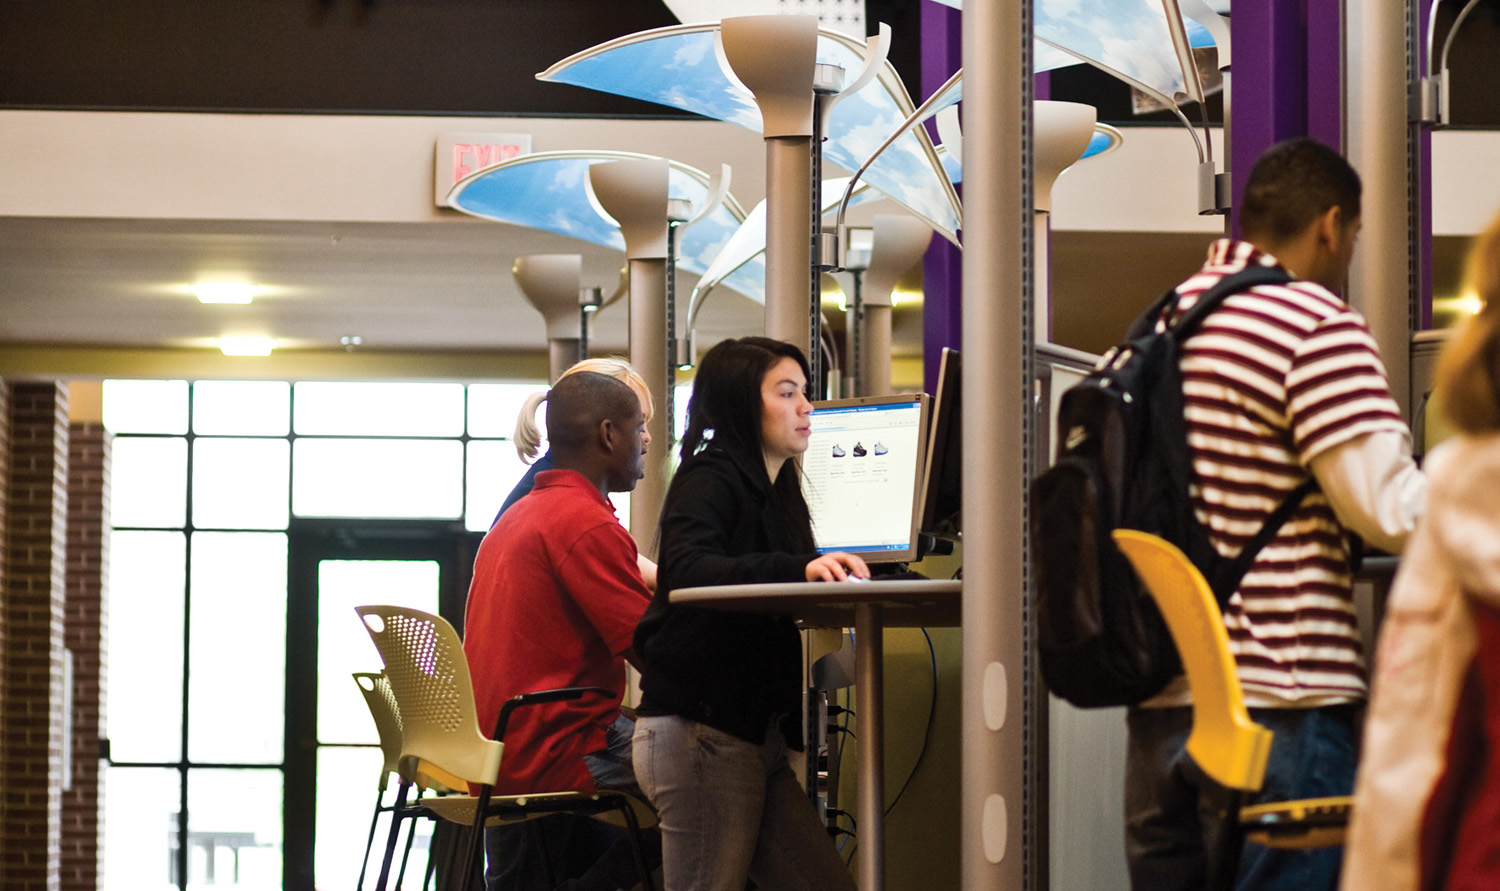 Students in the Andover Student Union working at computers